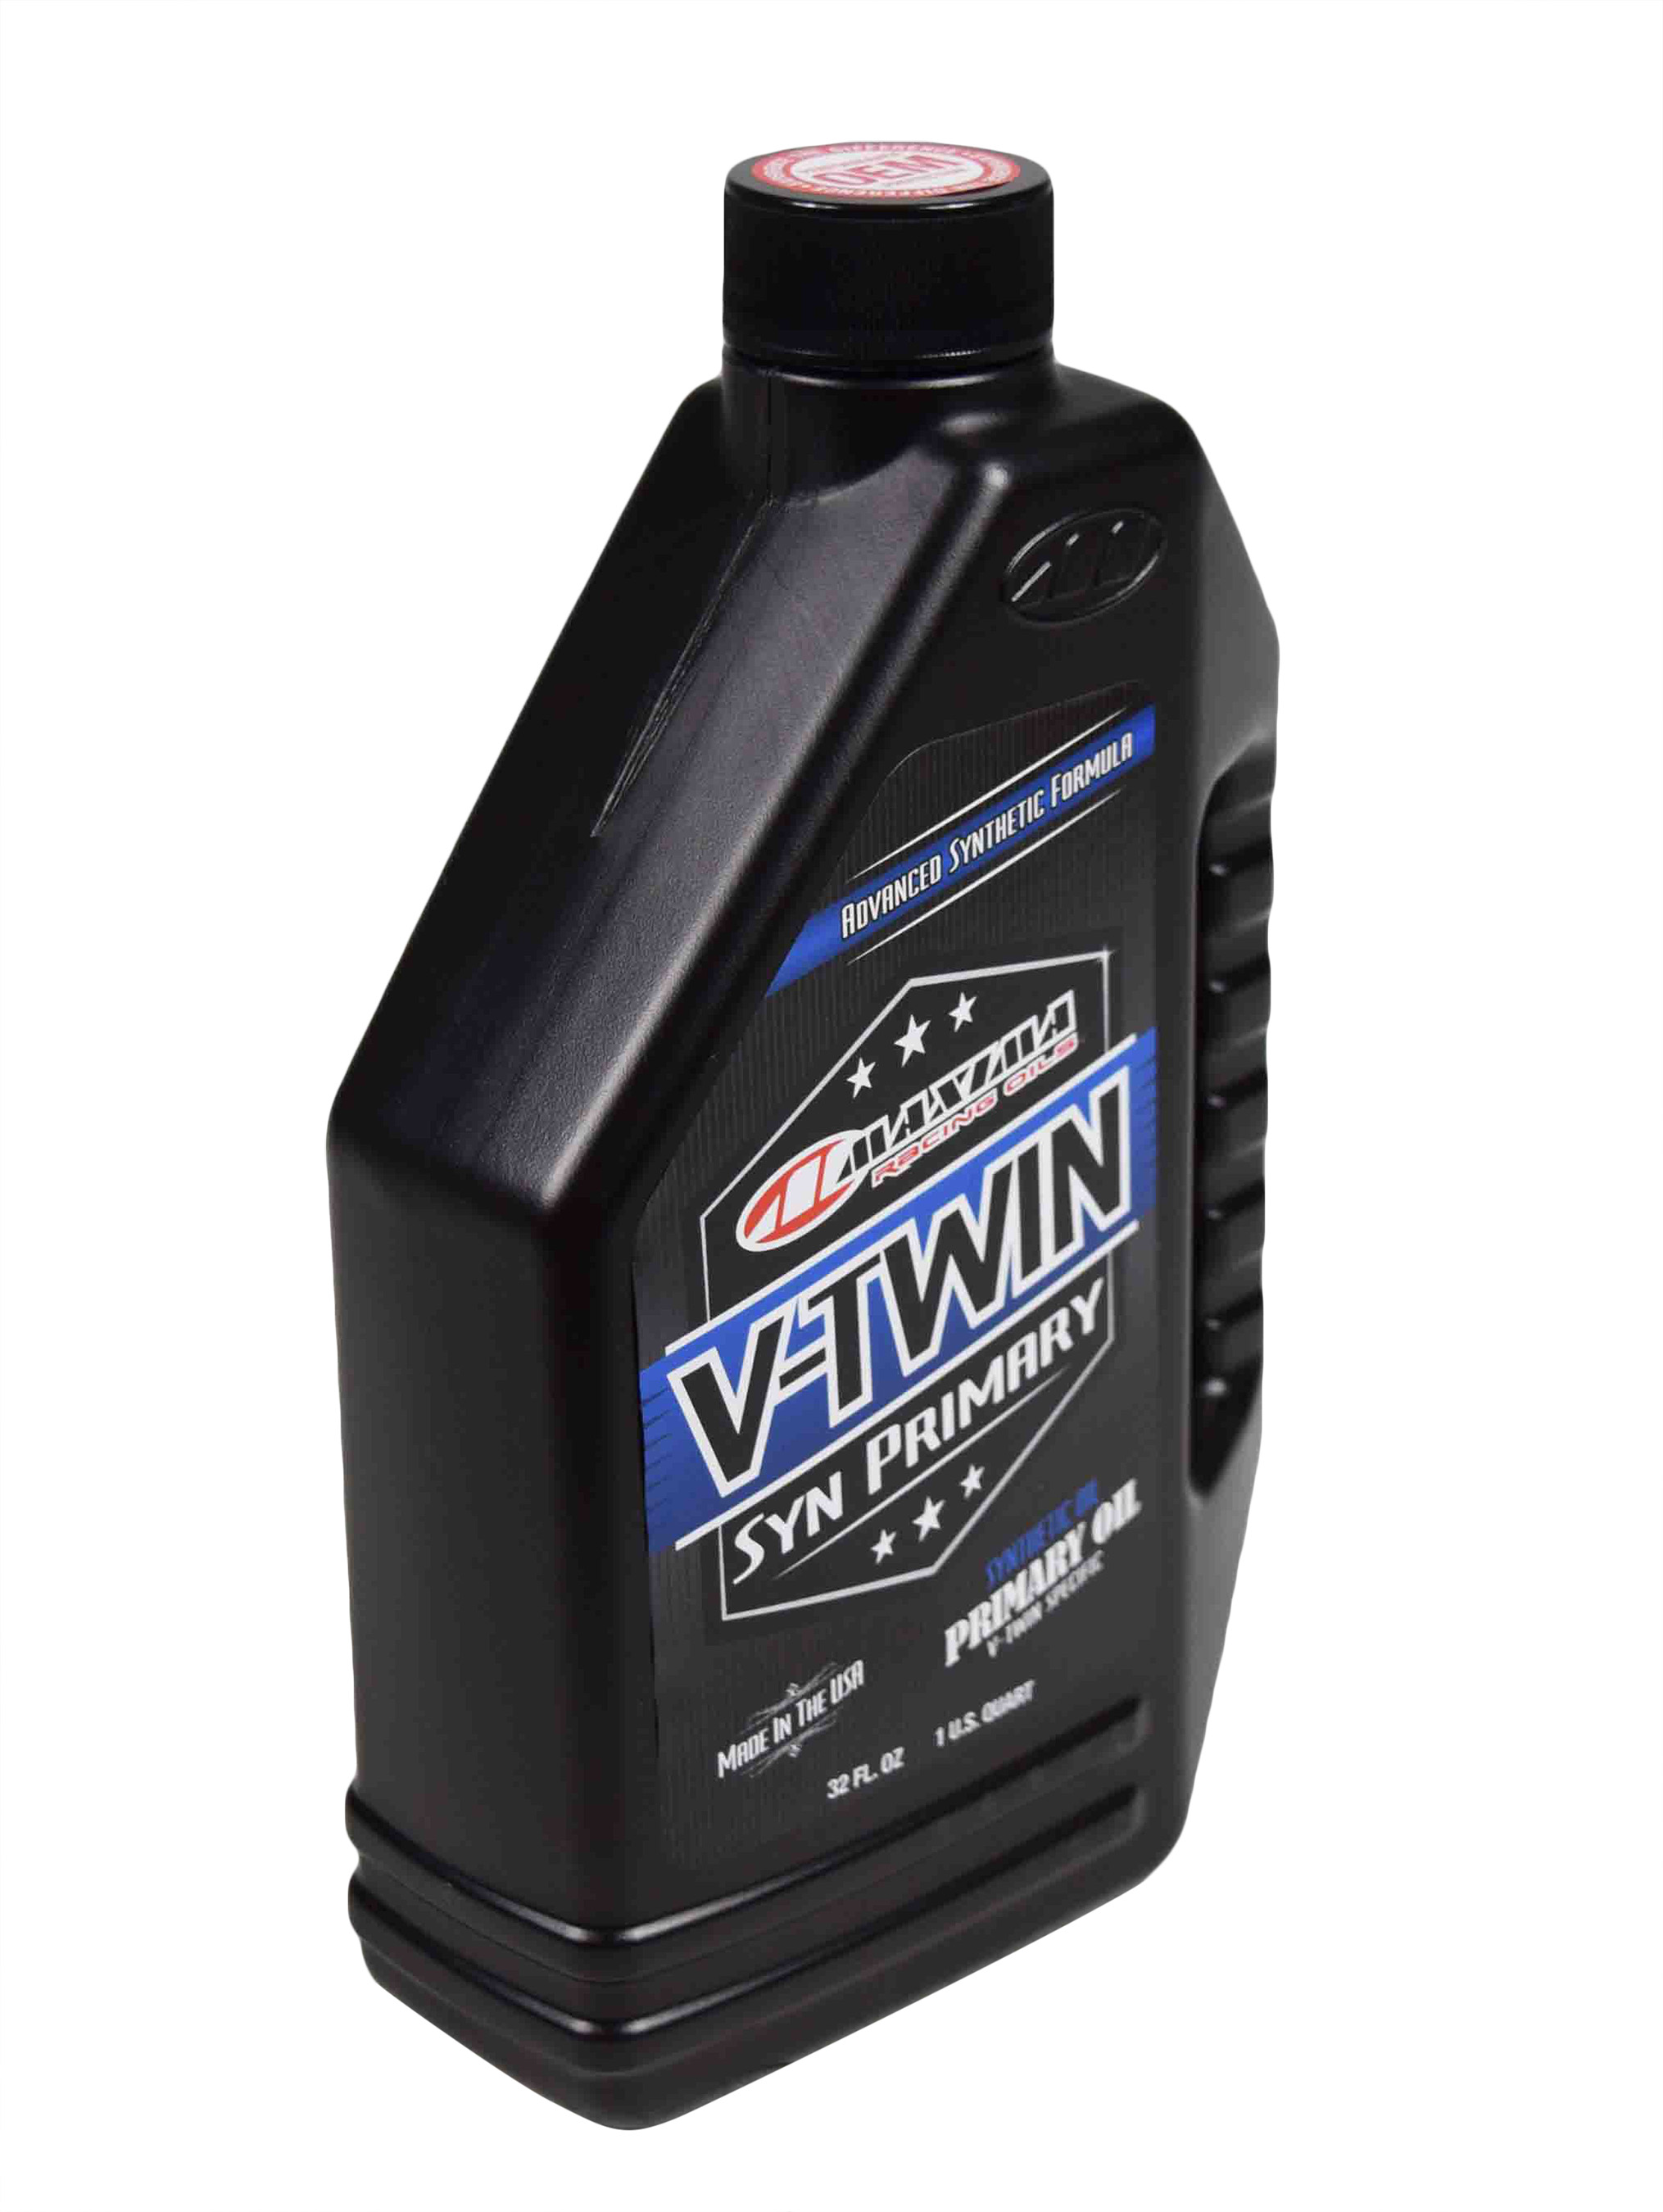 Maxima-40-05901-1-quart-V-Twin-Synthetic-Primary-Oil-32-fl.-oz-1-Pack-image-2